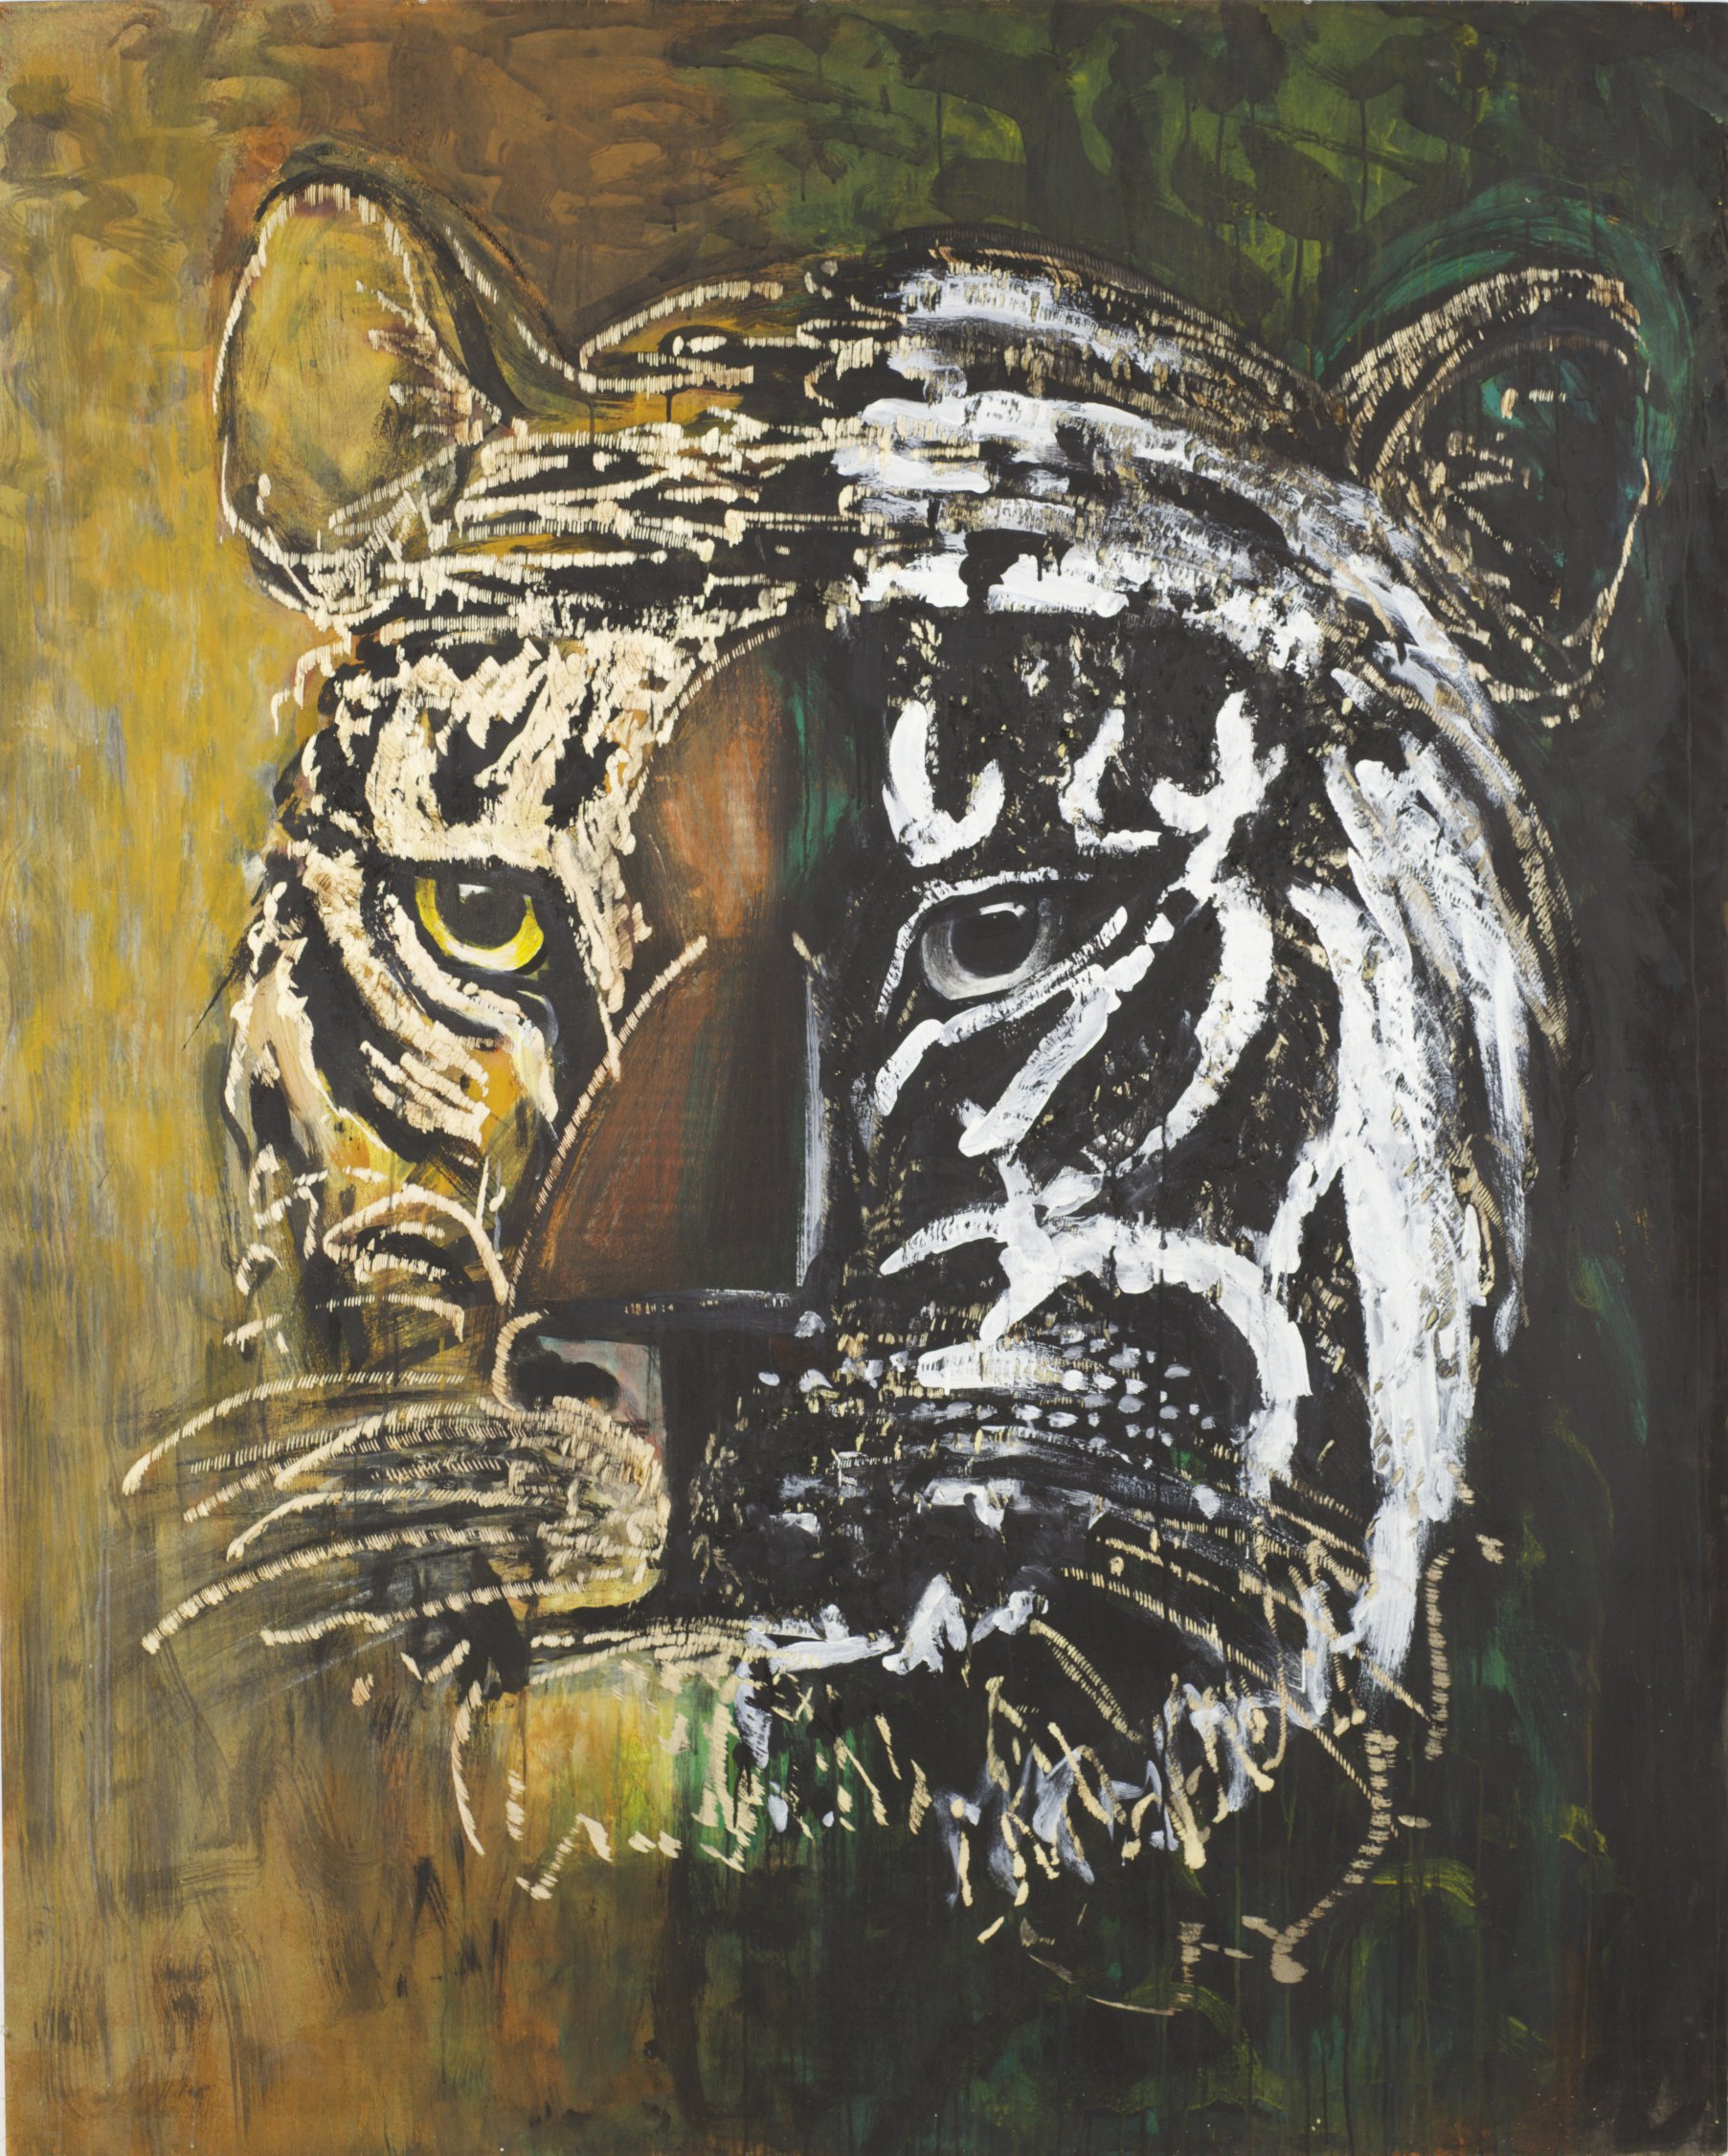 Dieter Finke | Untitled (Tiger) | about 2000 | acrylic and wood engraving | 204 x 164 cm